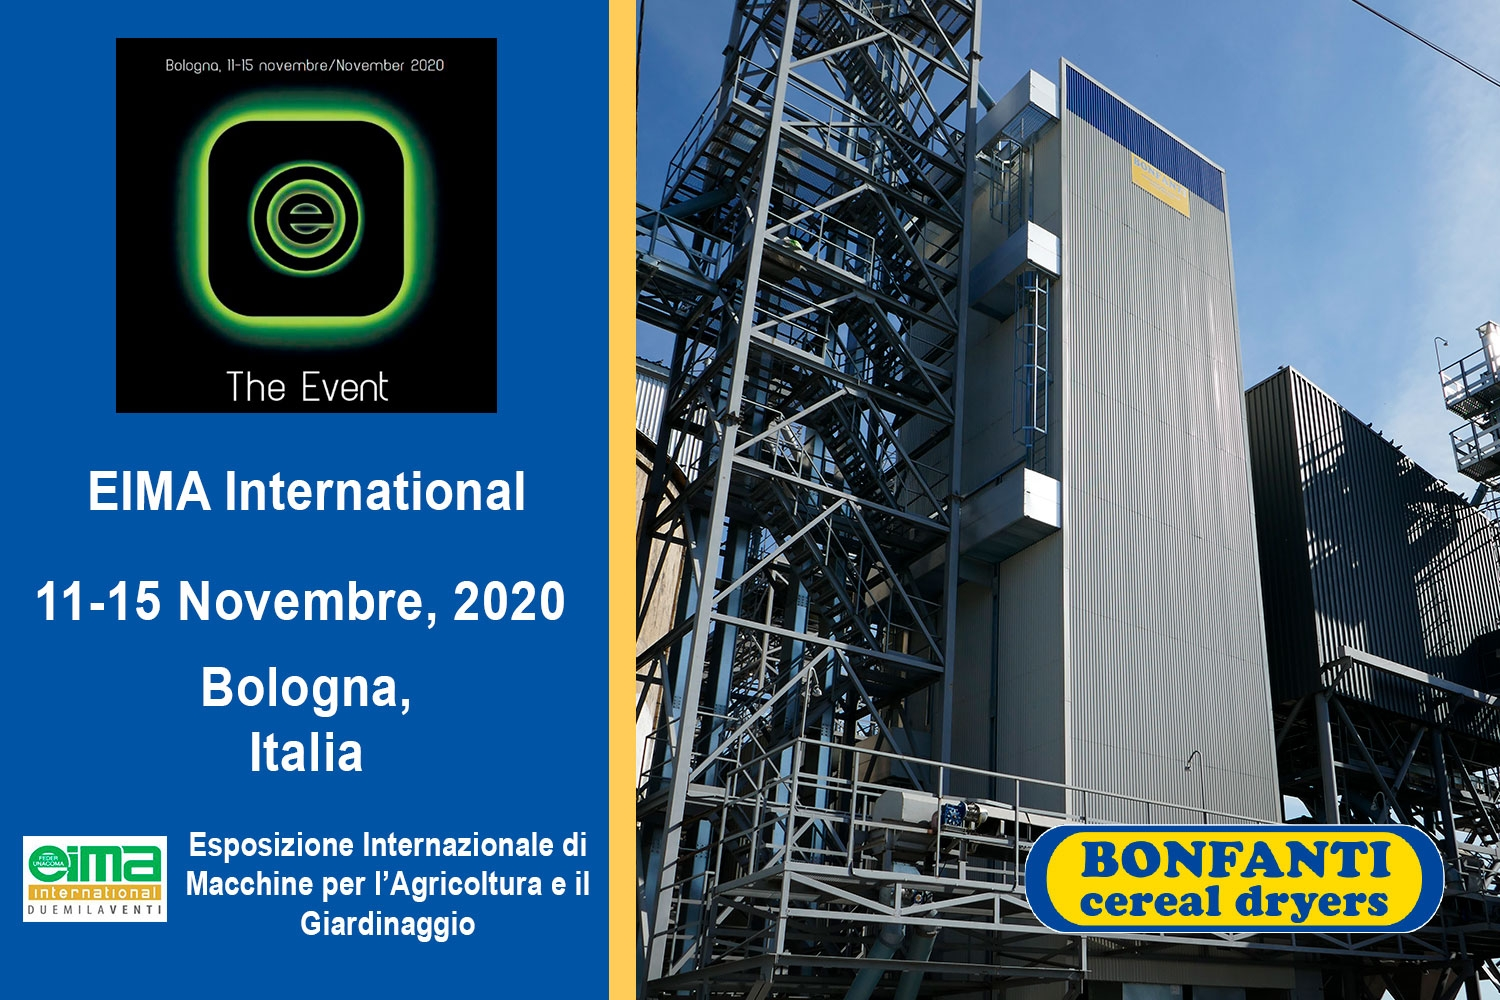 EIMA International – 11-15 November 2020